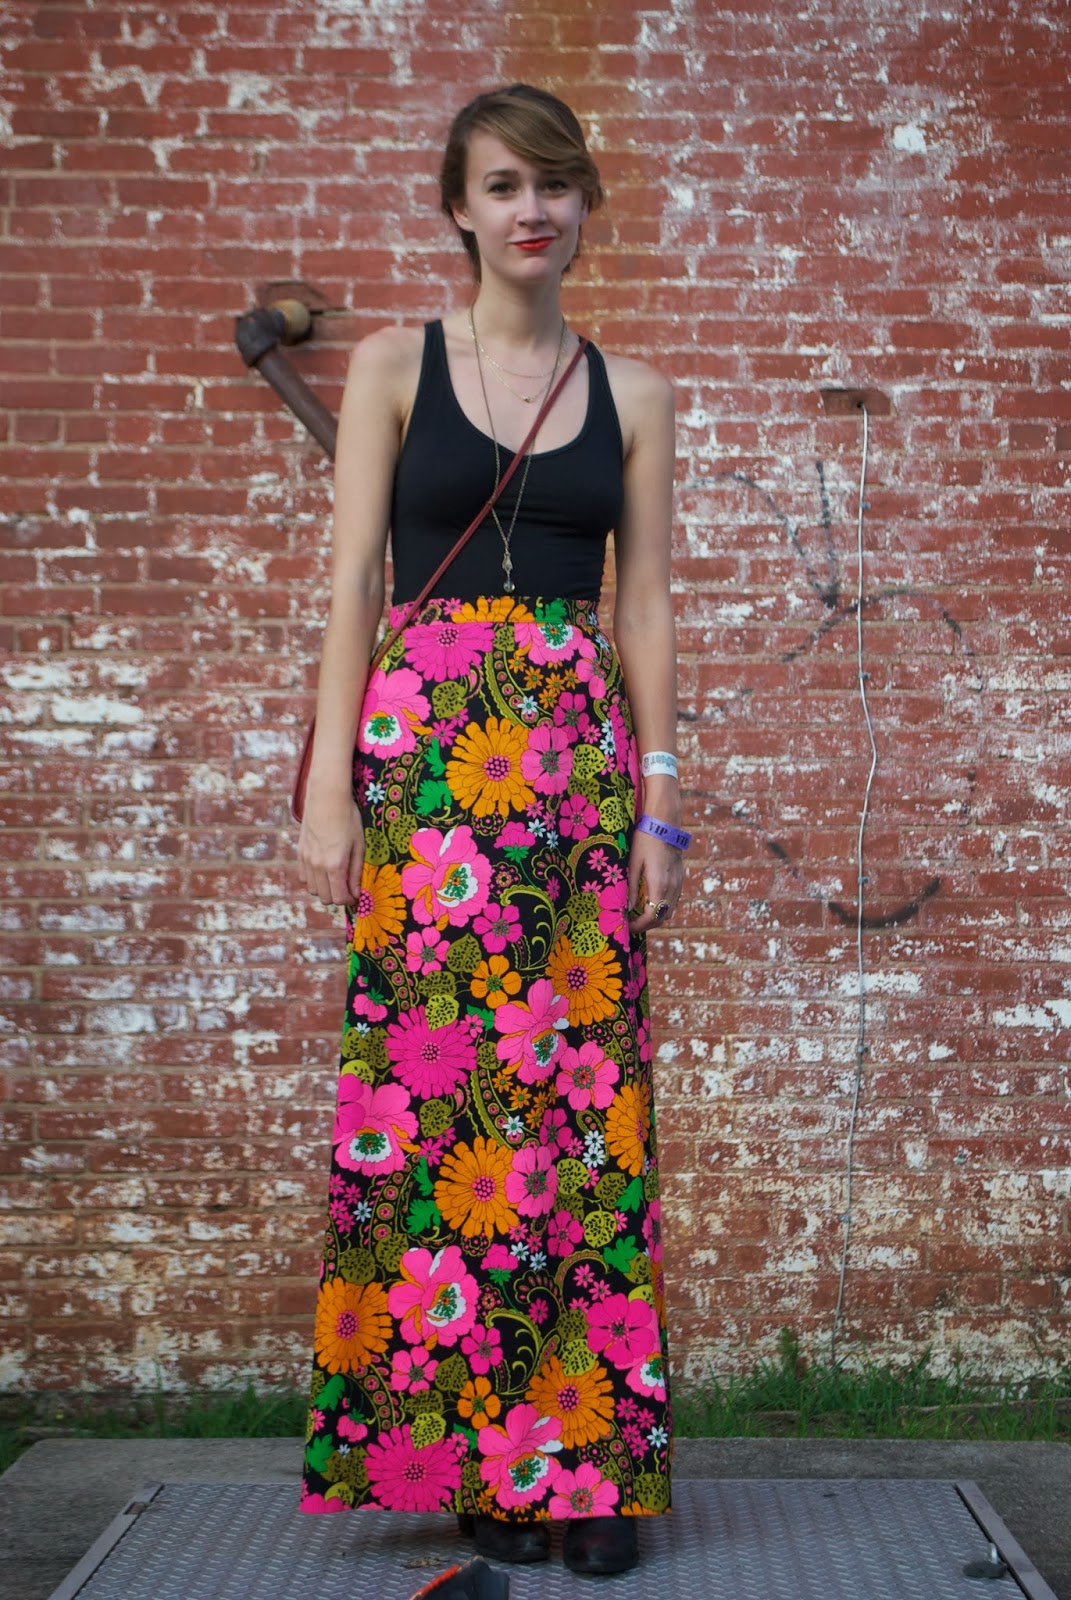 Floral is all the rage this spring and this psychedelic vintage skirt is gorgeous! For an updated look that features a floral design check out Macy's  MADE Floral Print Skirt